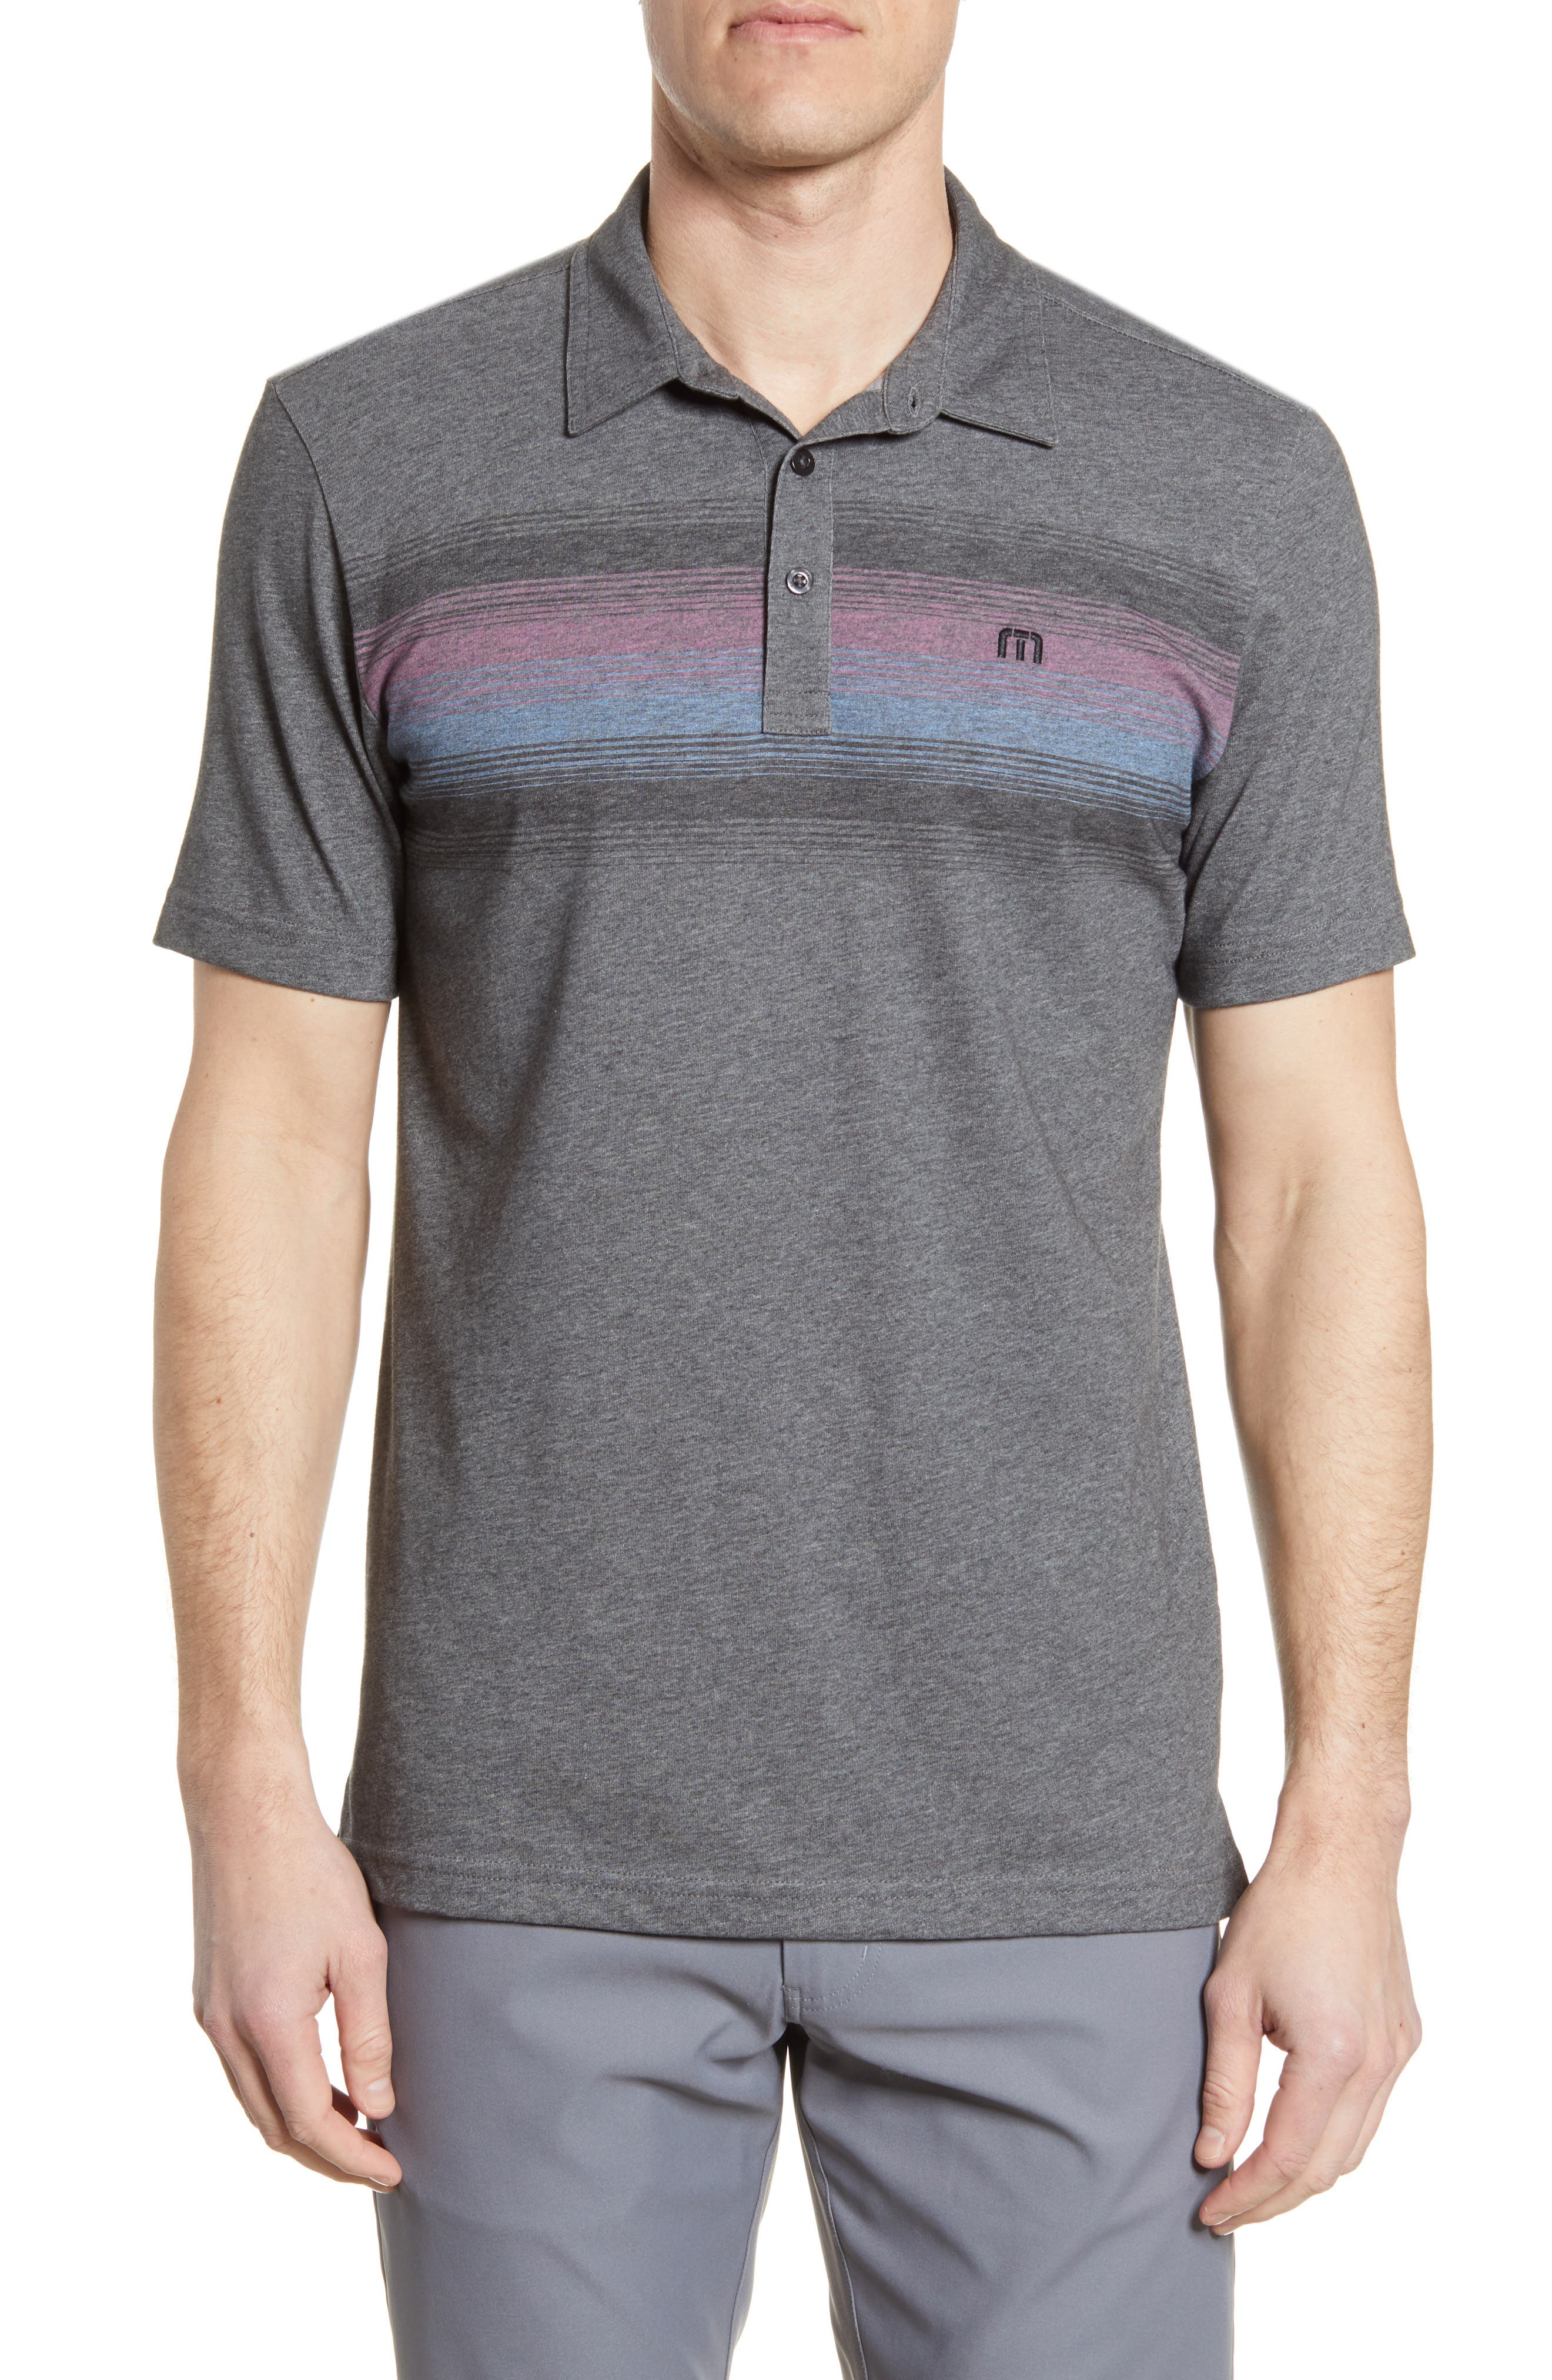 A band of mixed, gradient stripes broadens the chest of a polo made for comfort and casual good looks from a softly heathered cotton blend. Style Name: Travismathew Were Dancin Stripe Polo. Style Number: 6046341. Available in stores.